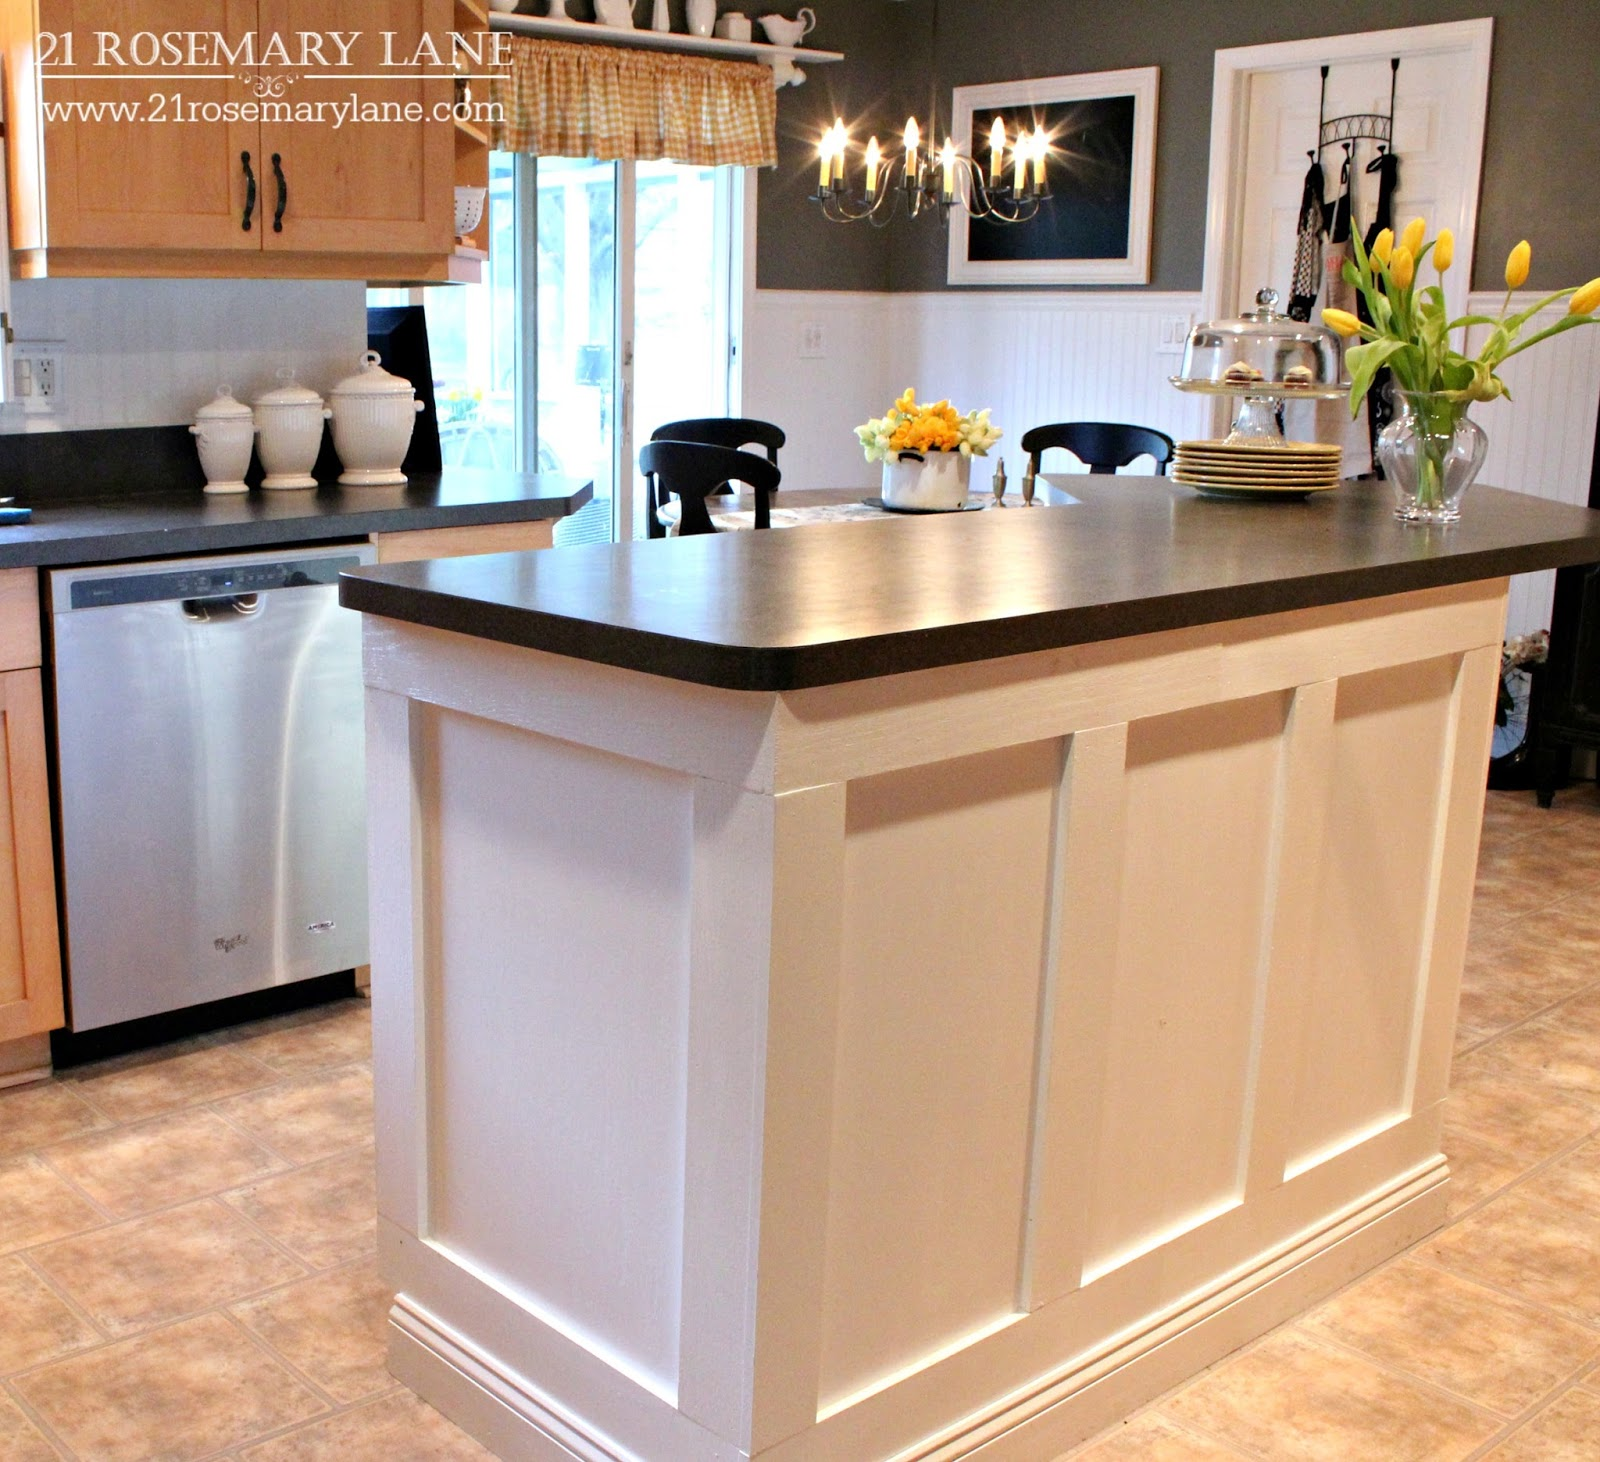 Island Kitchen 21 Rosemary Lane Board And Batten Kitchen Island Makeover